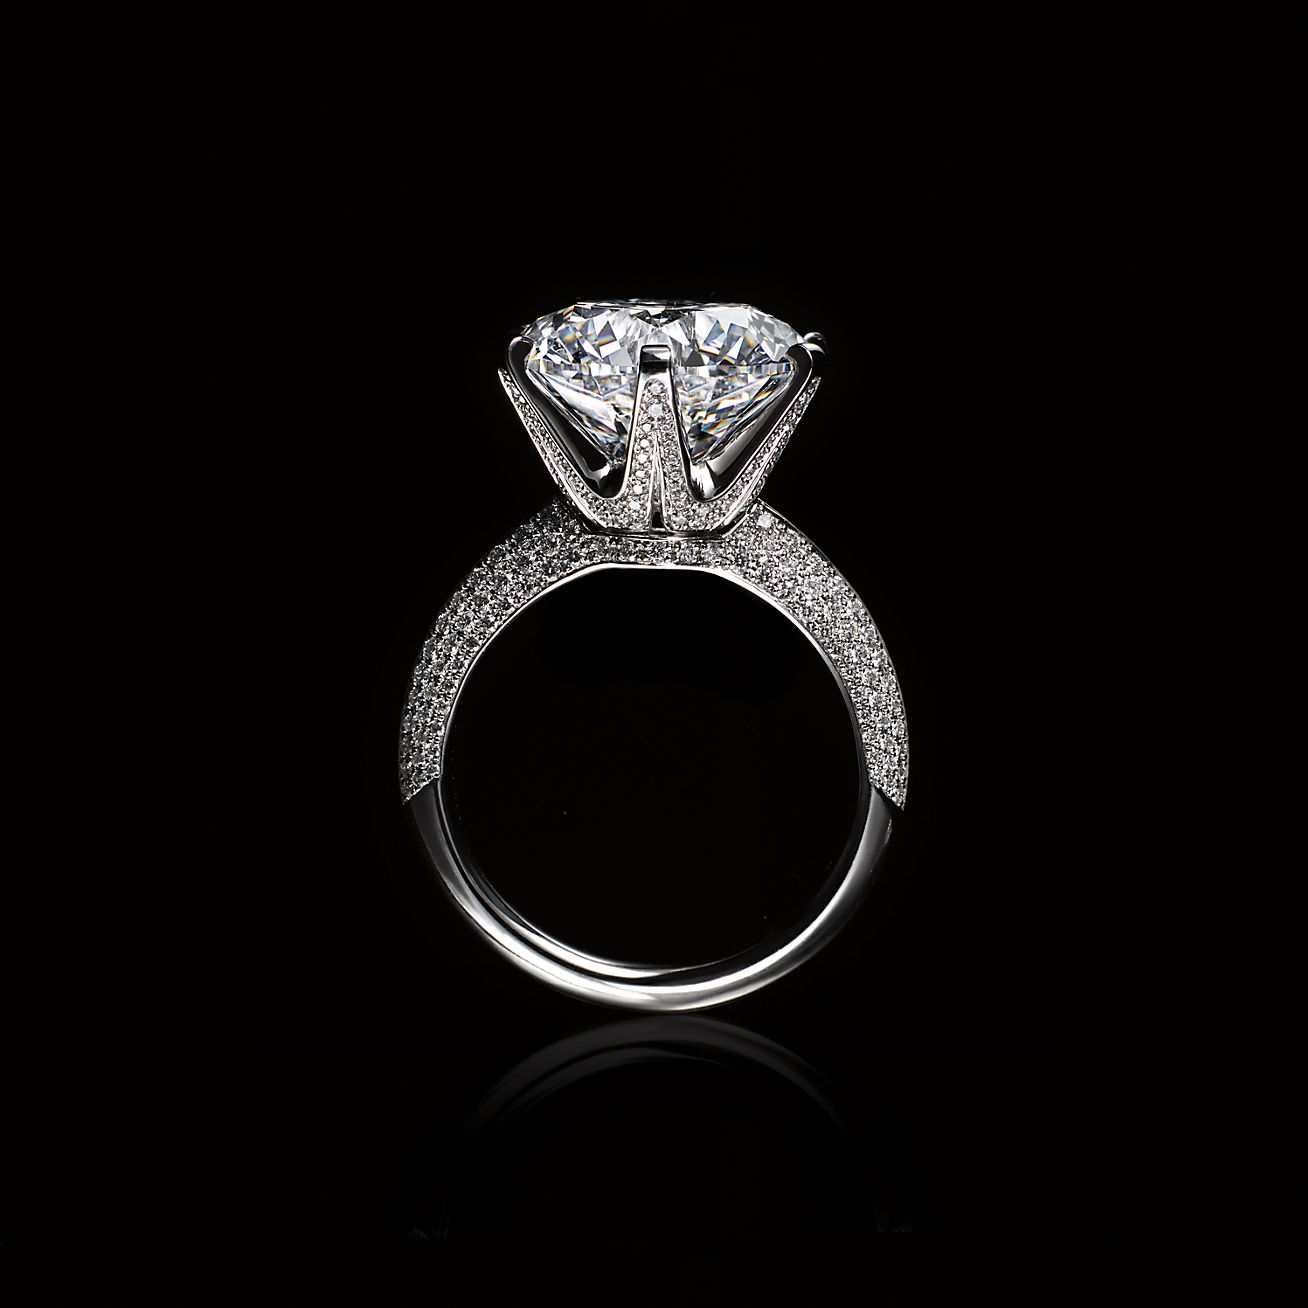 all internally rings this promise hallmarks and the best ring do diamonds flawless jewelry extremely images boasts highly important in on rare diamond white rauantiques photography i pinterest